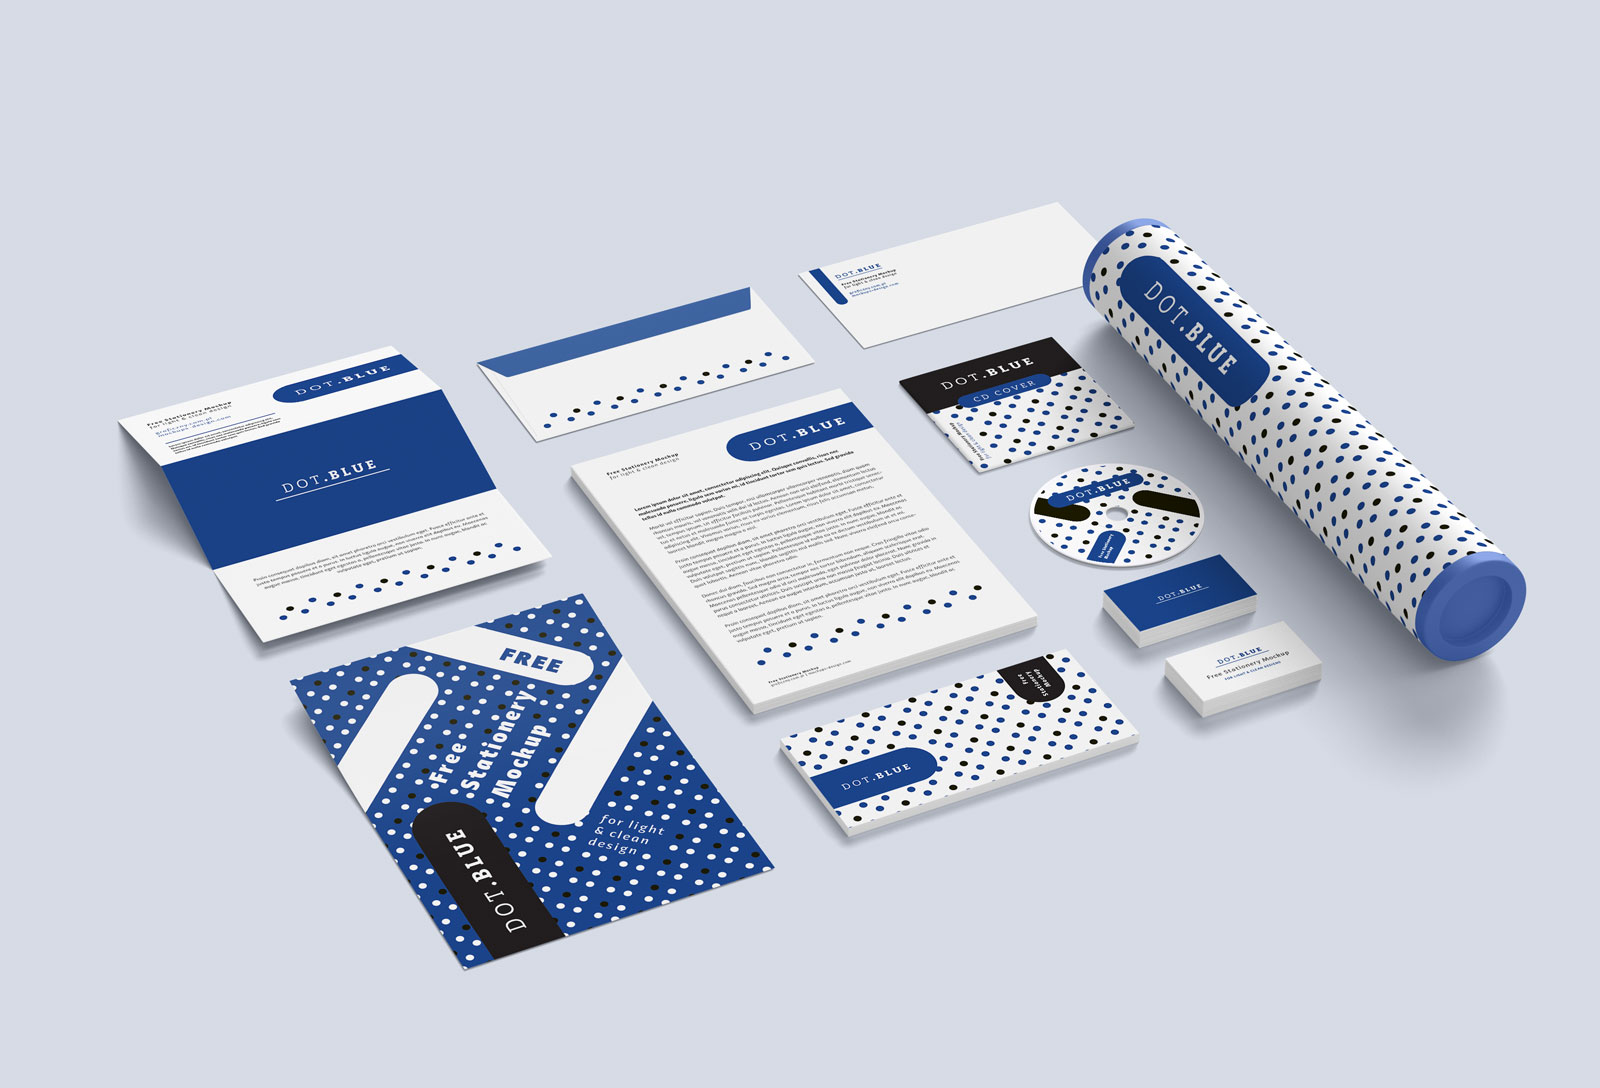 free branding    corporate identity    stationery mockup psd